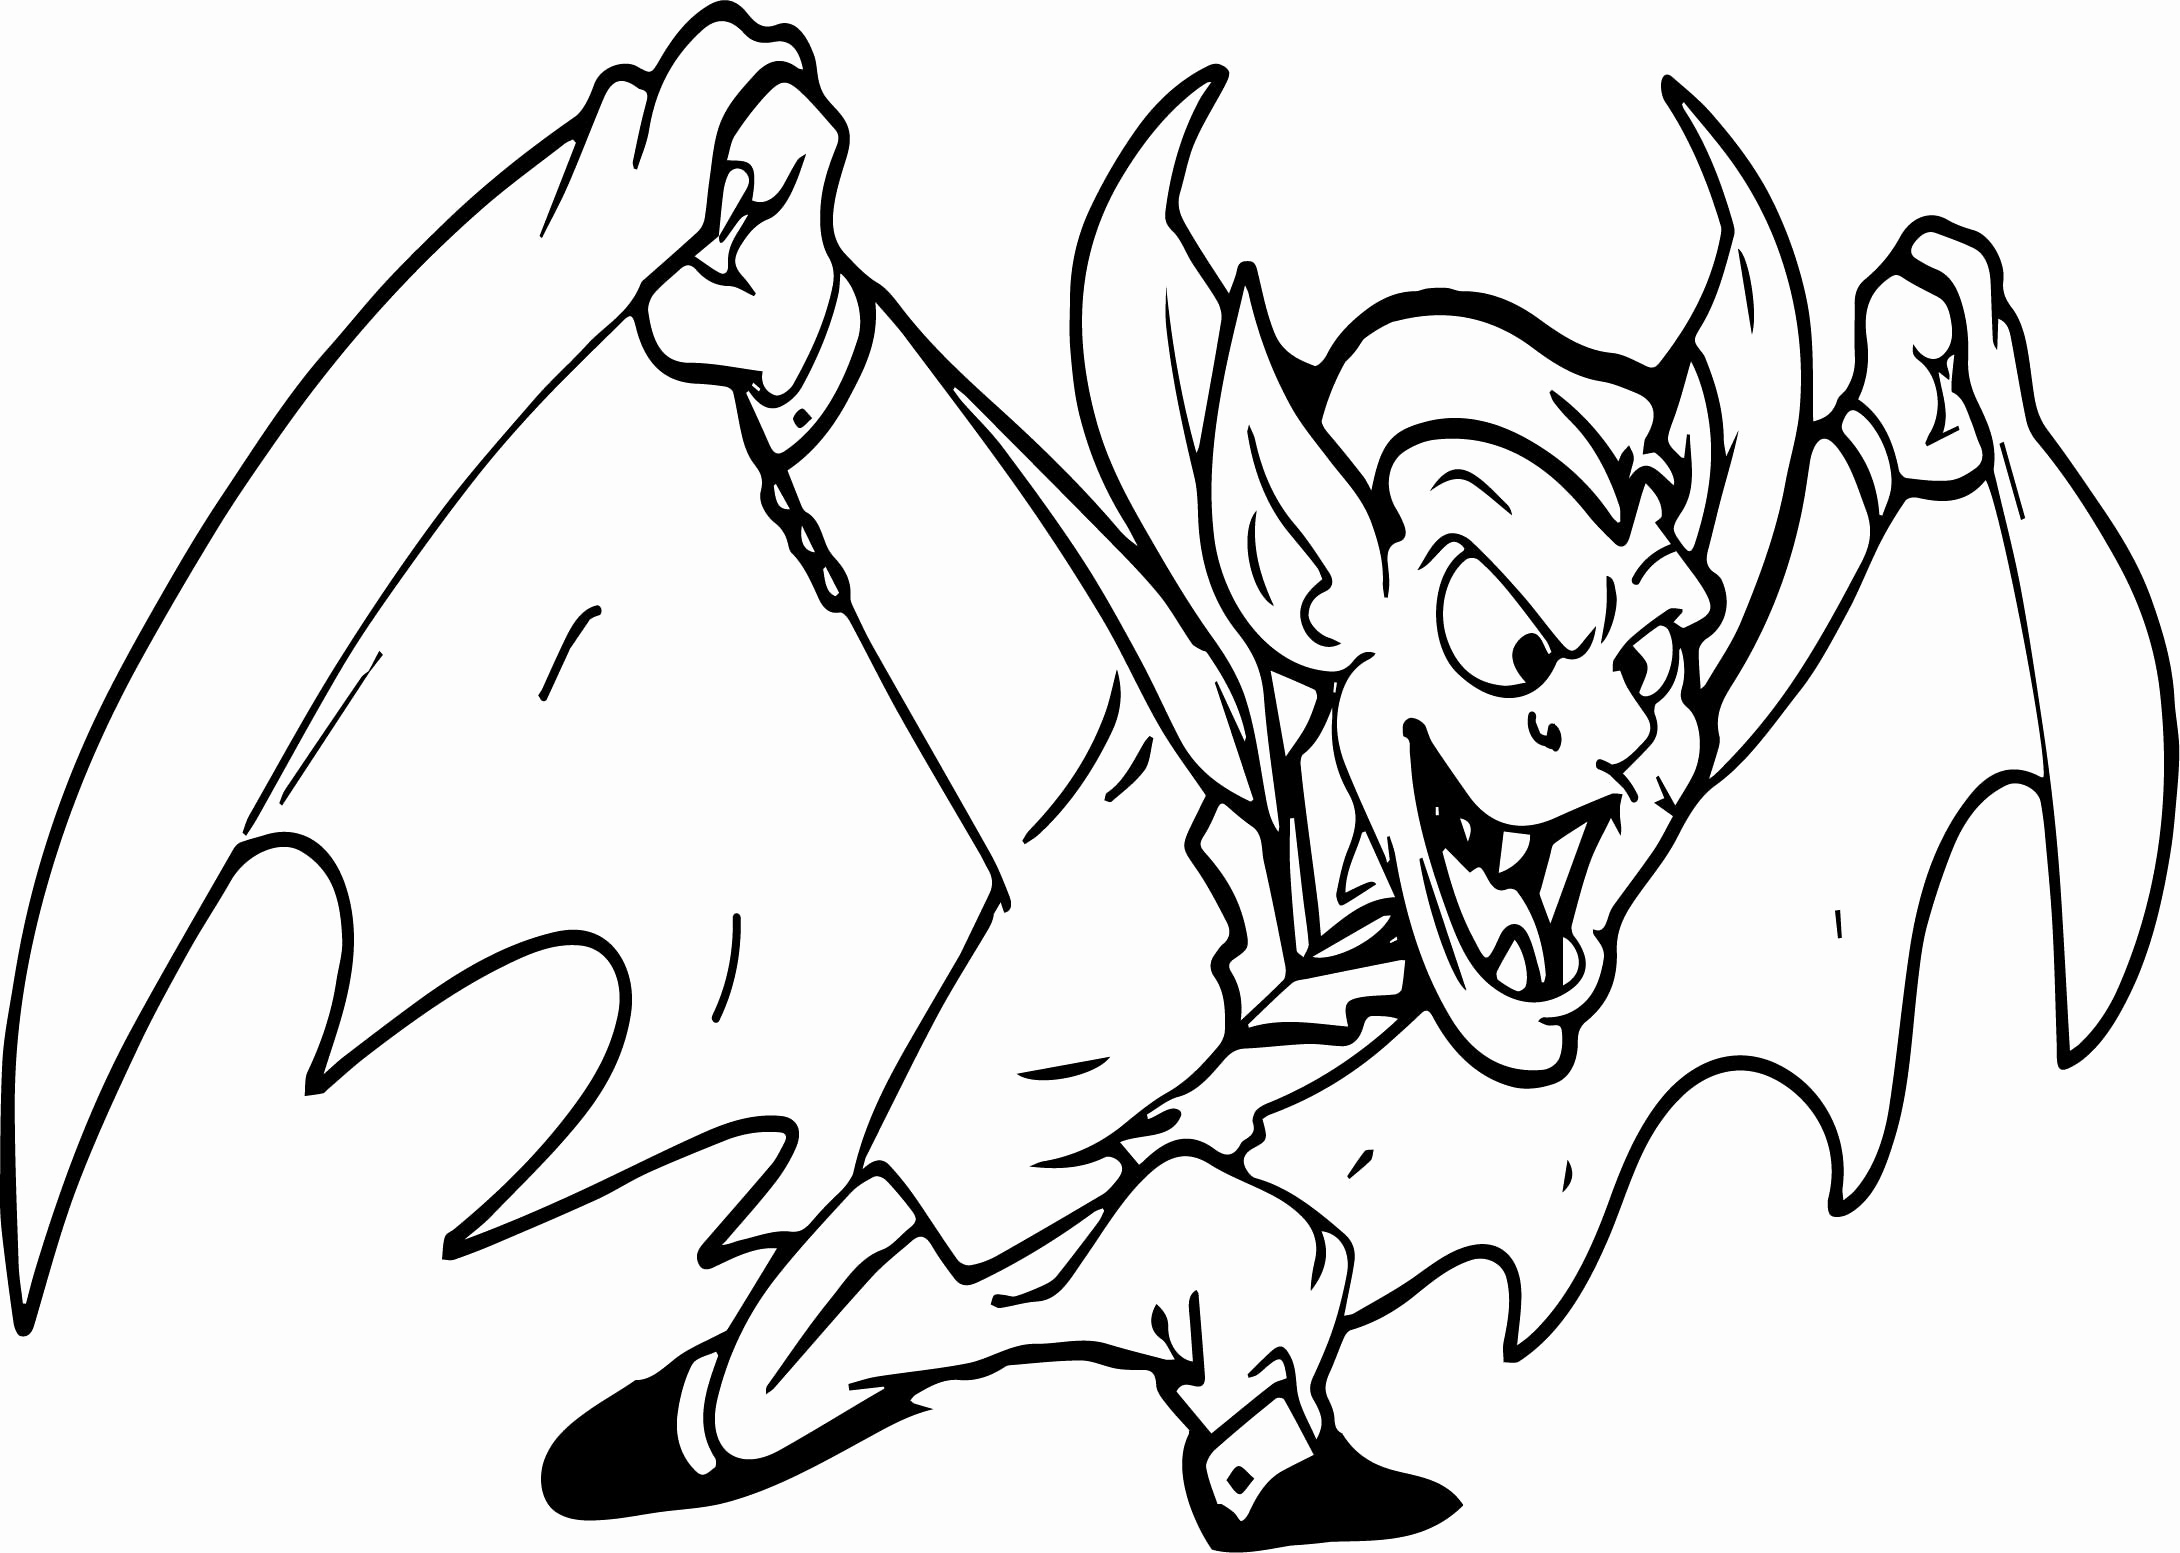 Vampire Coloring Pages For Kids at GetDrawings | Free download